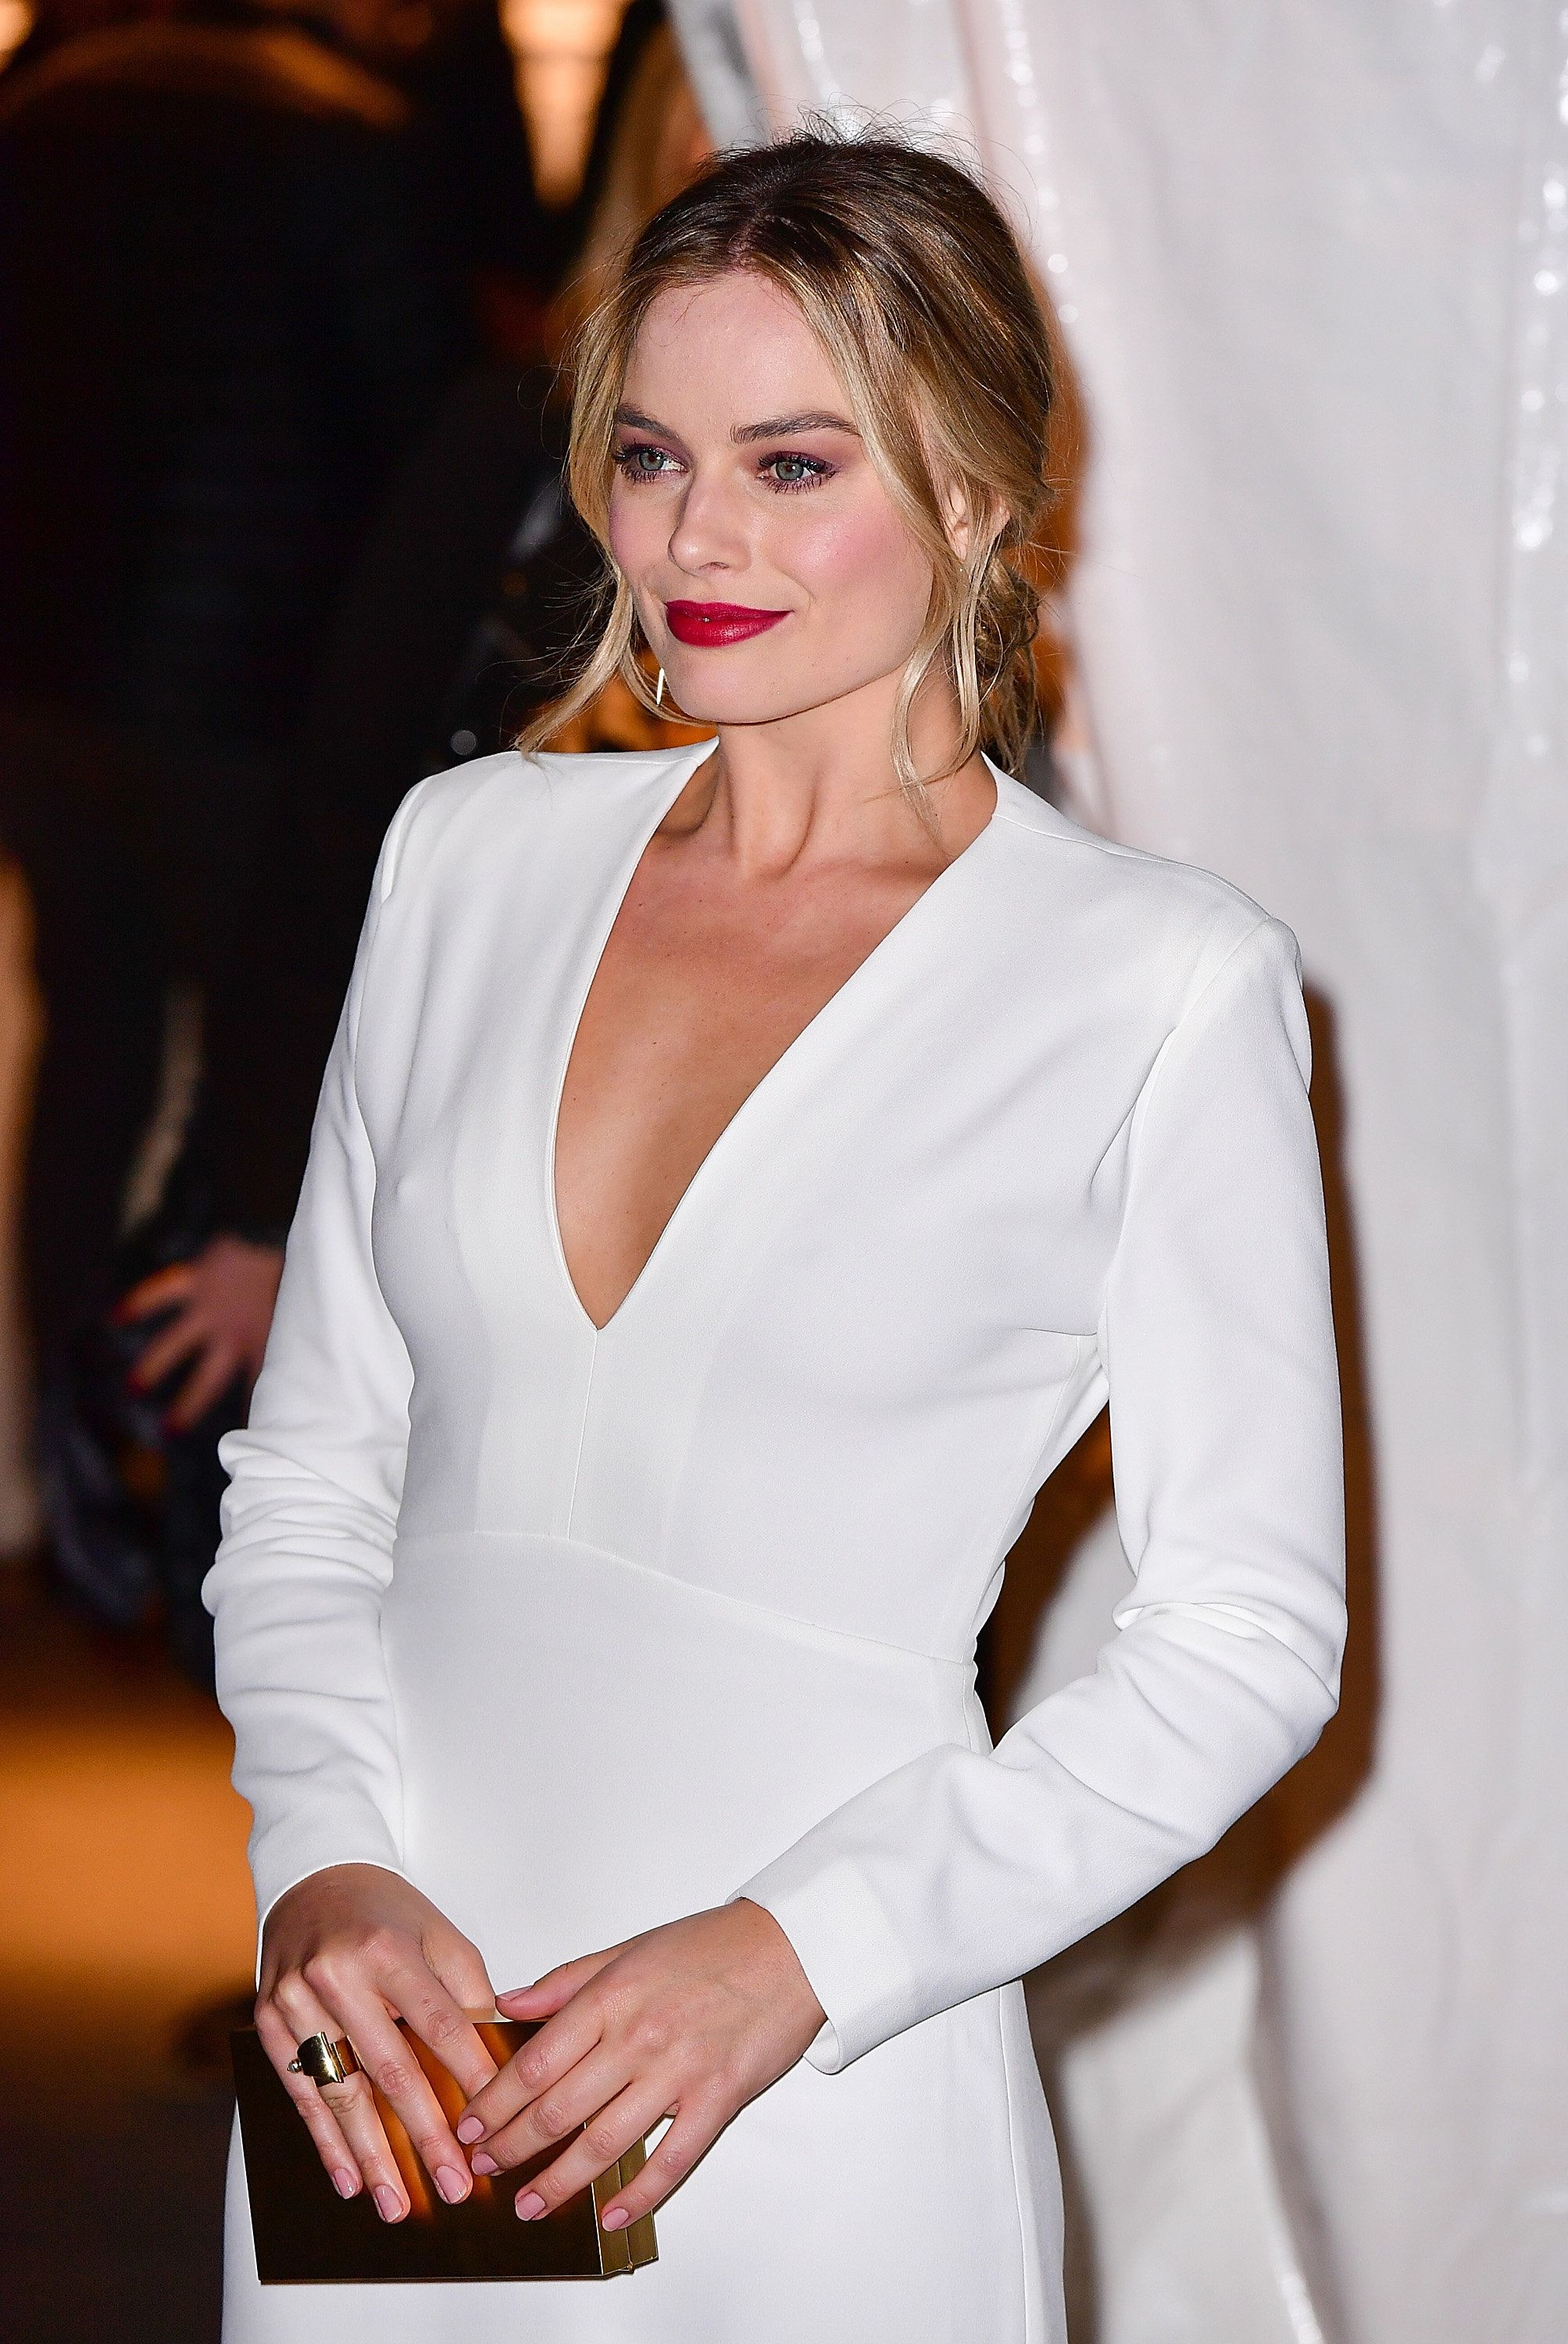 Margot Robbie Marries Tom Ackerley In Secret Ceremony: